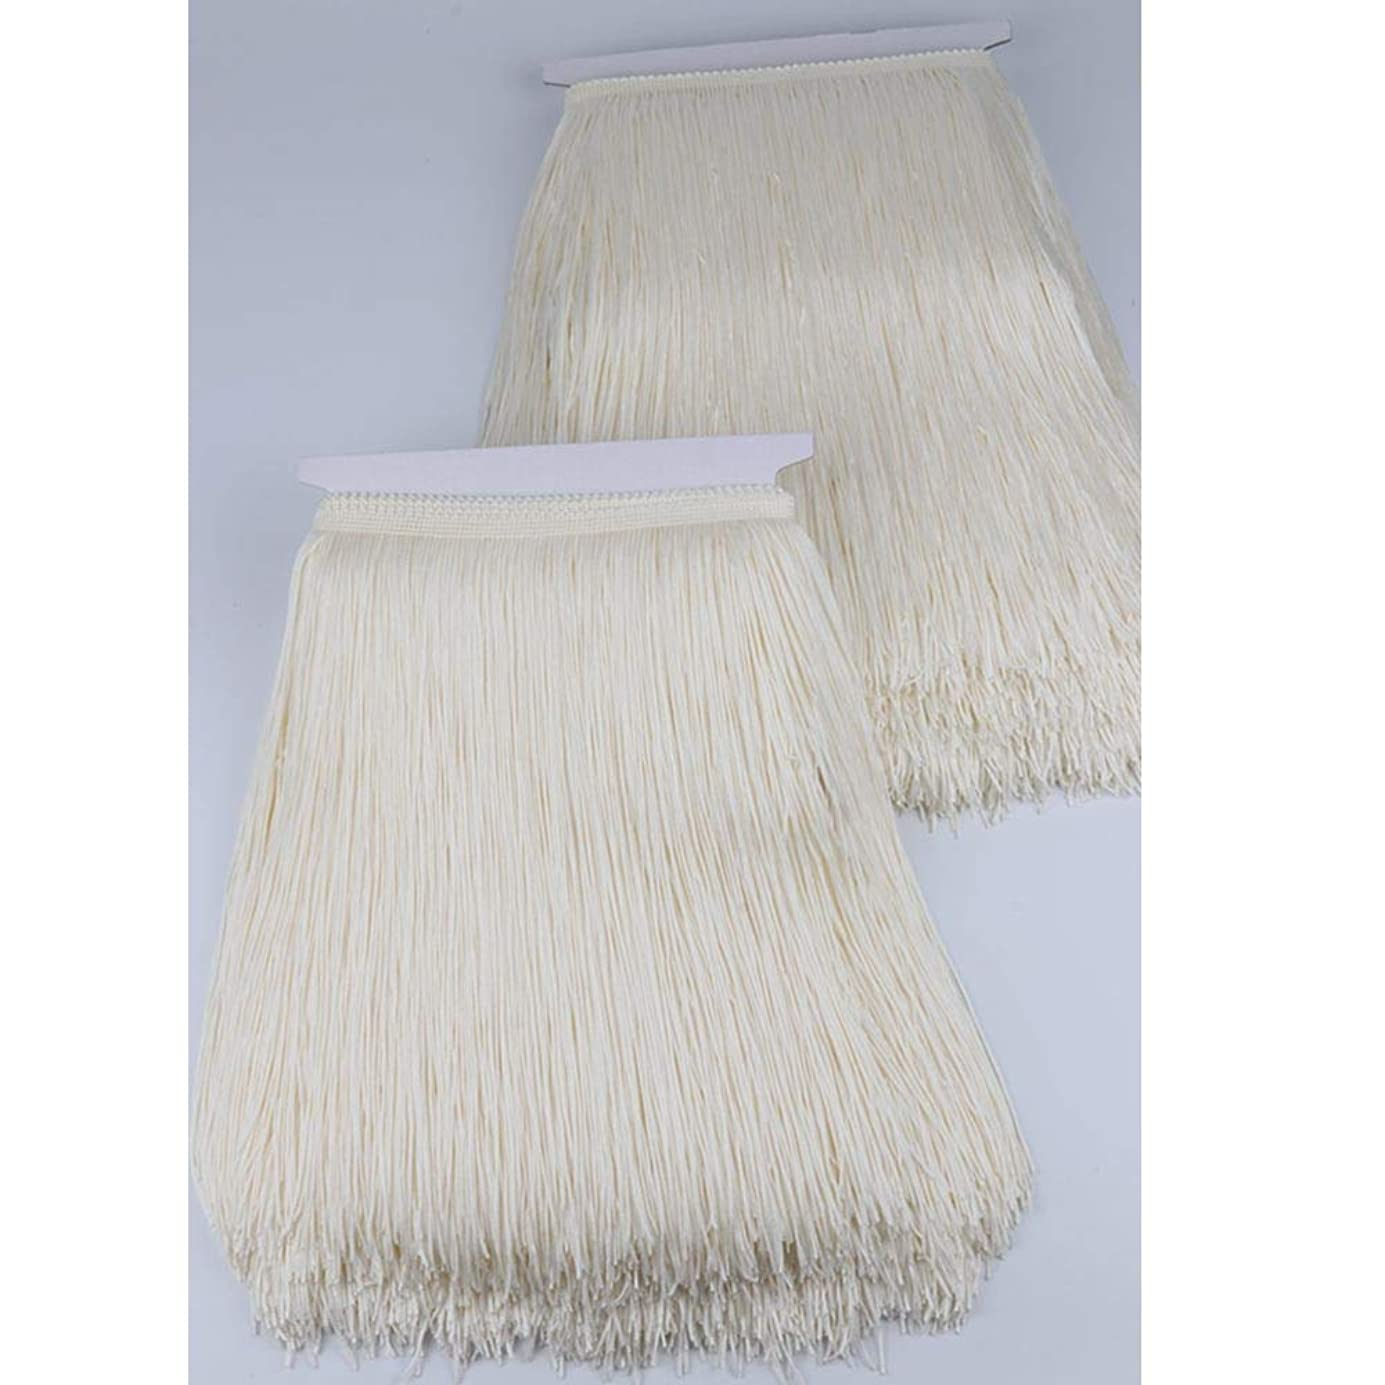 Heartwish268 Fringe Trim Lace Polyerter Fibre Tassel 12inch(″) Wide 10 Yards Long for Clothes Accessories and Latin Wedding Dress and DIY Lamp Shade Decoration Black Cream Off-White deegbl4917